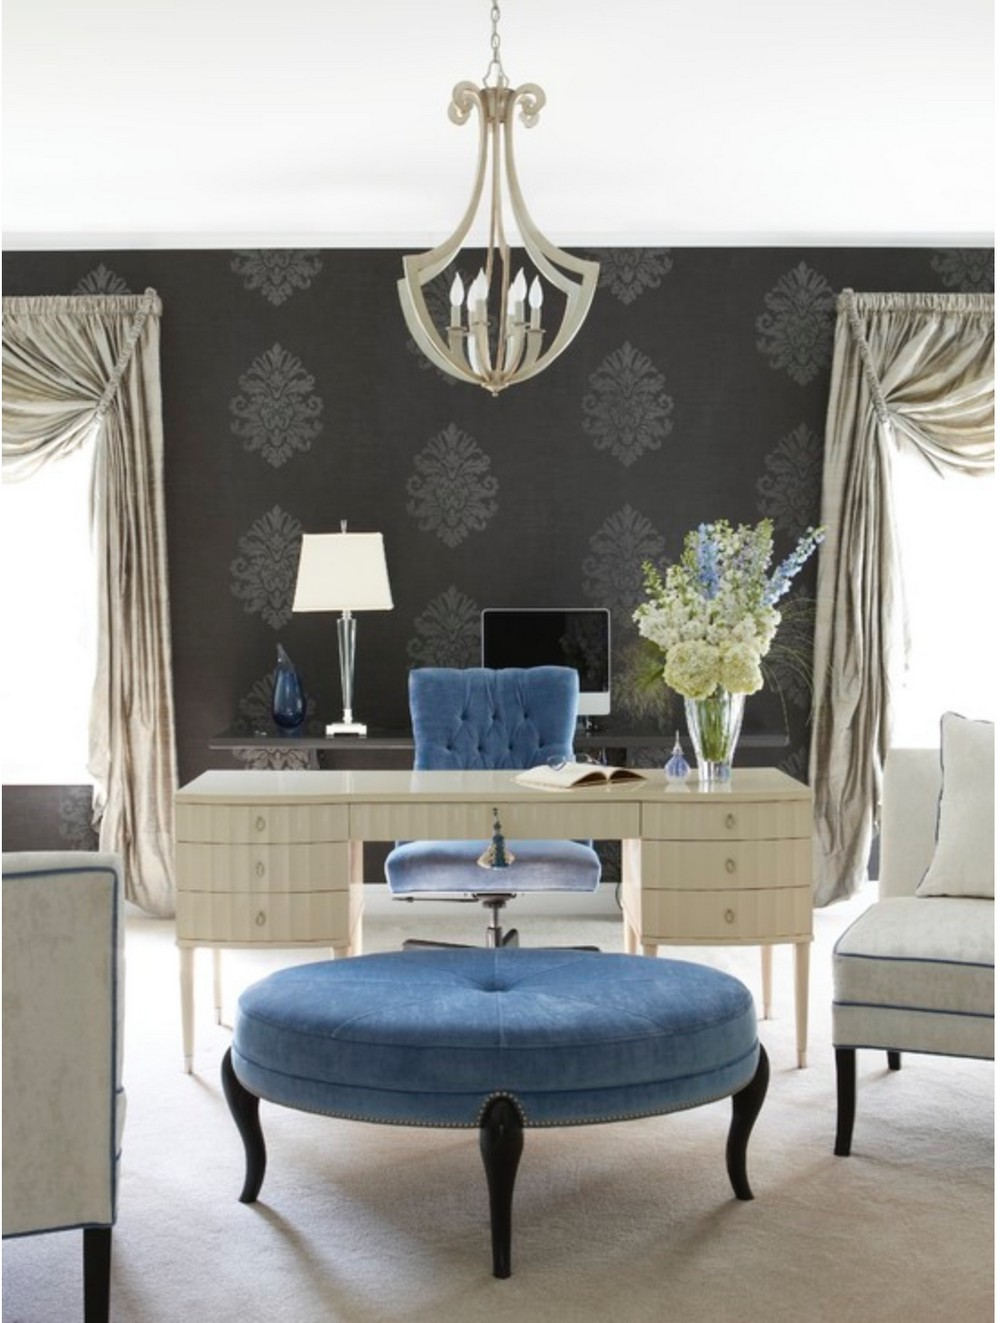 home office designs 17 Awe-Inspiring Home Office Designs full of Colors and Textures 18 Awe Inspiring Home Office Designs full of Colors and Textures 16